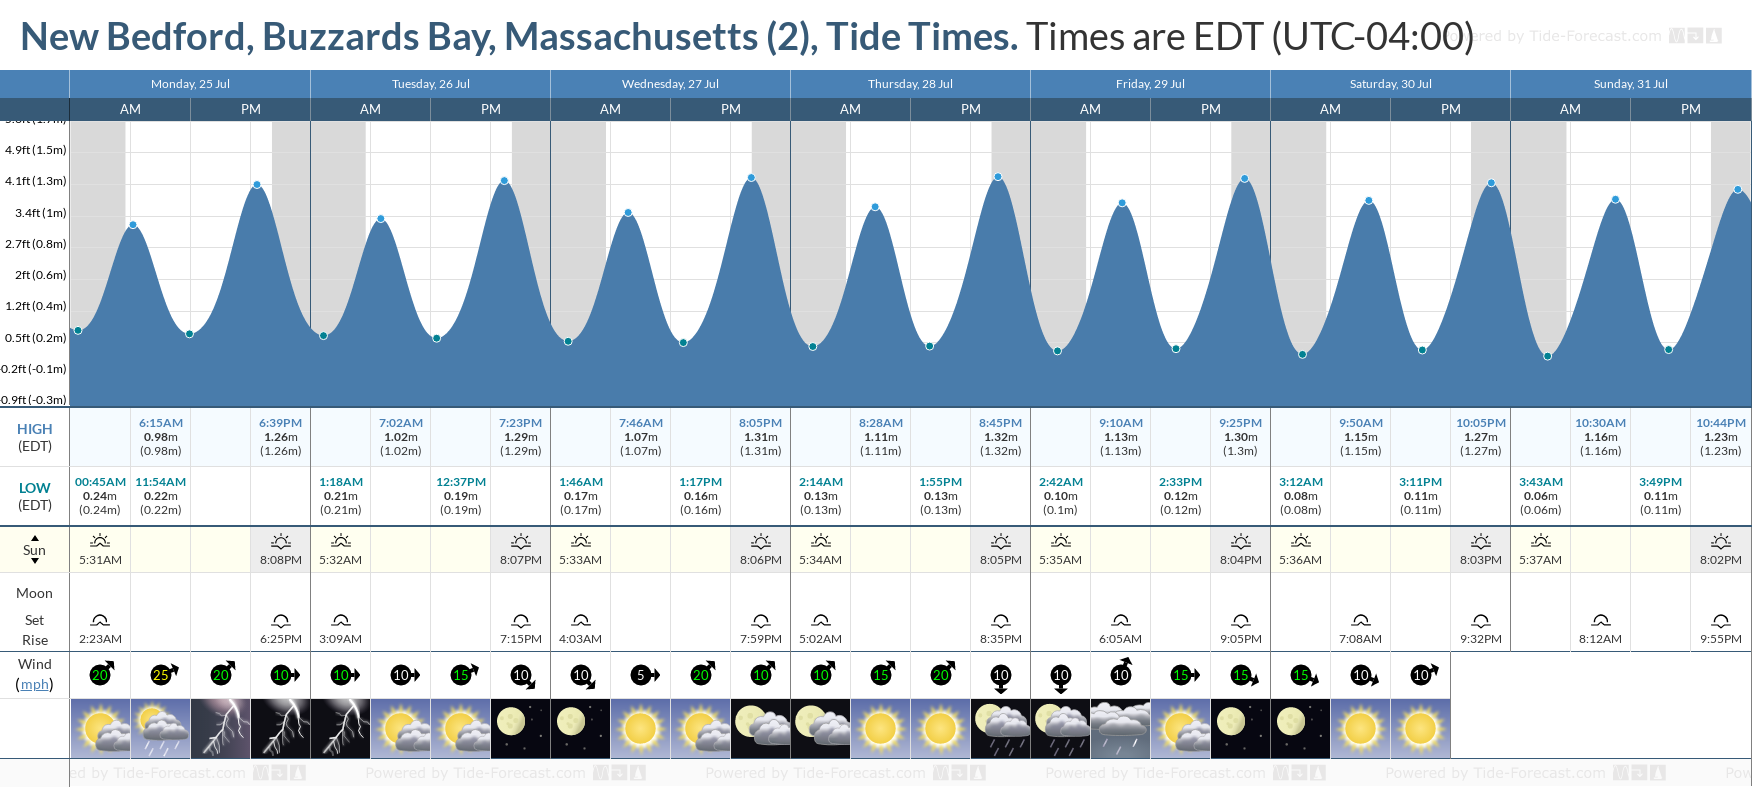 New Bedford, Buzzards Bay, Massachusetts (2) Tide Chart including high and low tide tide times for the next 7 days